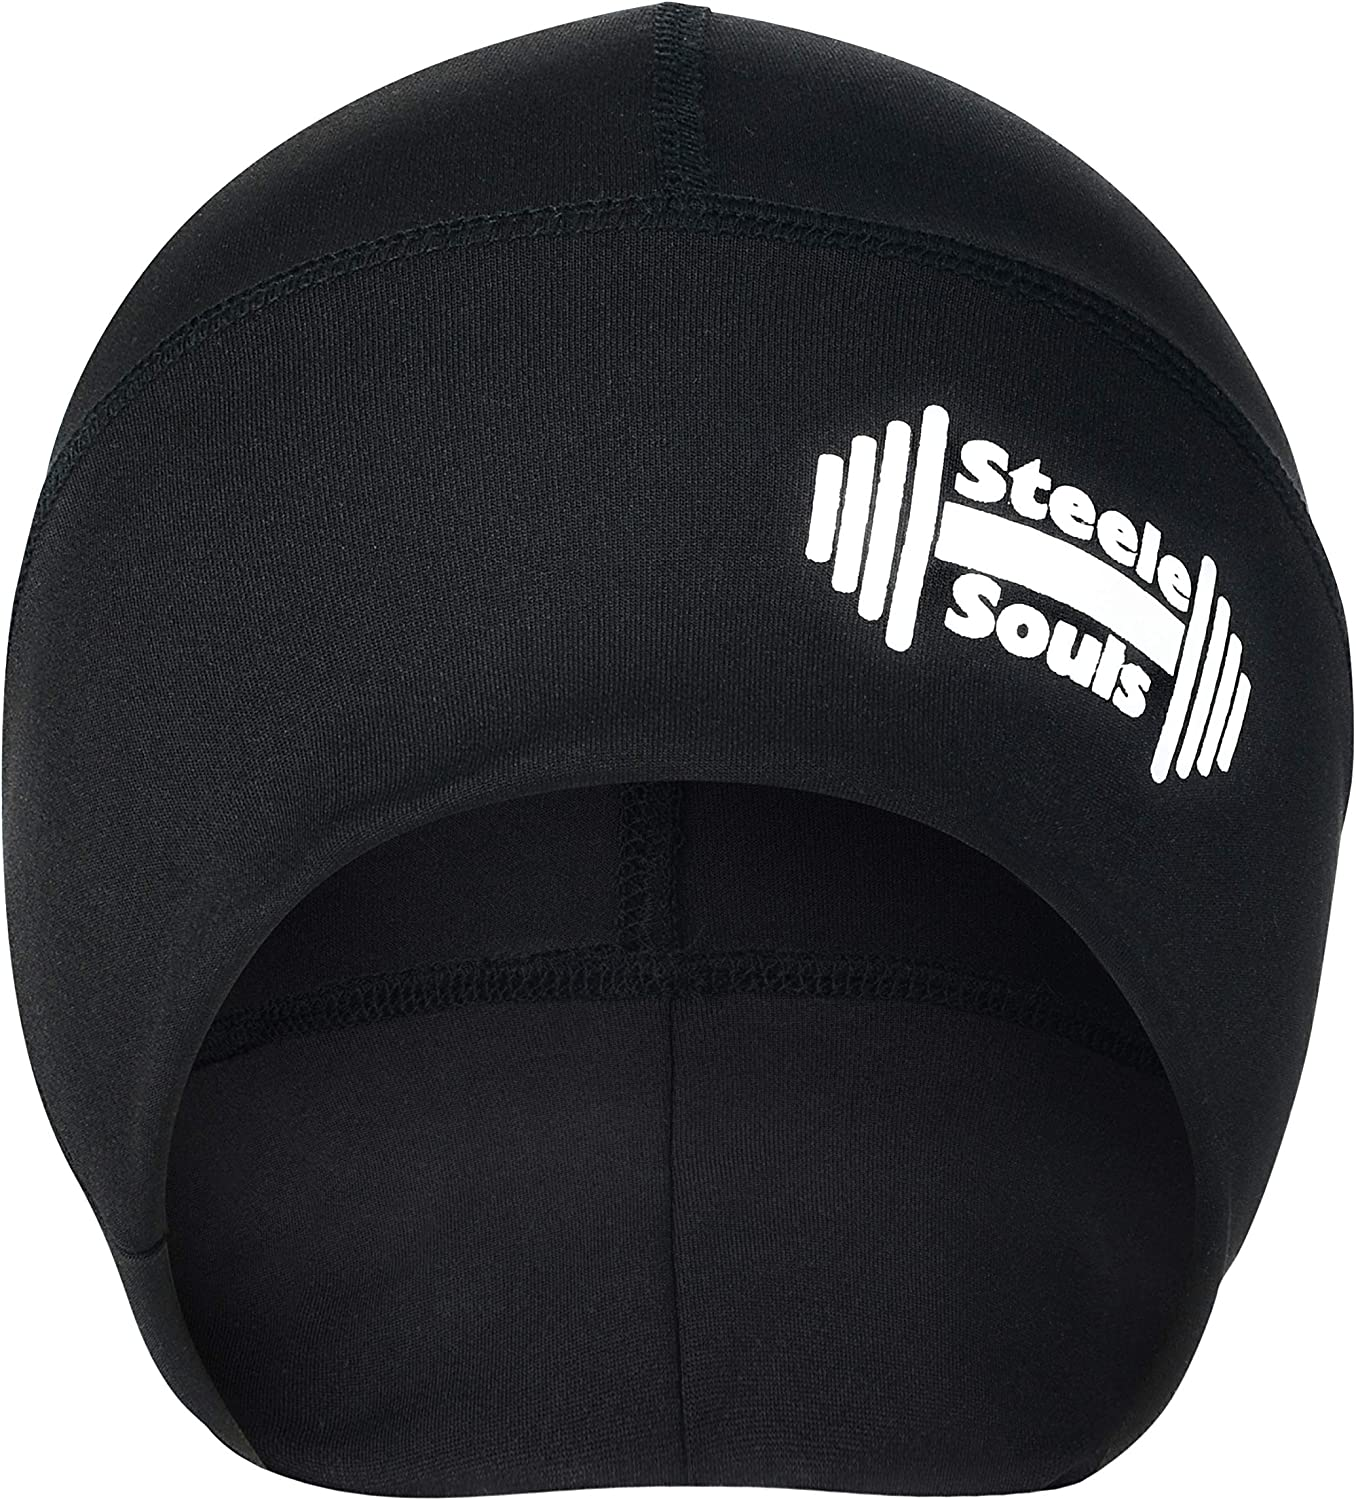 Steele Souls   Skull Cap - Helmet Liner - Running Hat - Cooling Hat   Moisture Wicking Beanie to Keep Your Head Cool